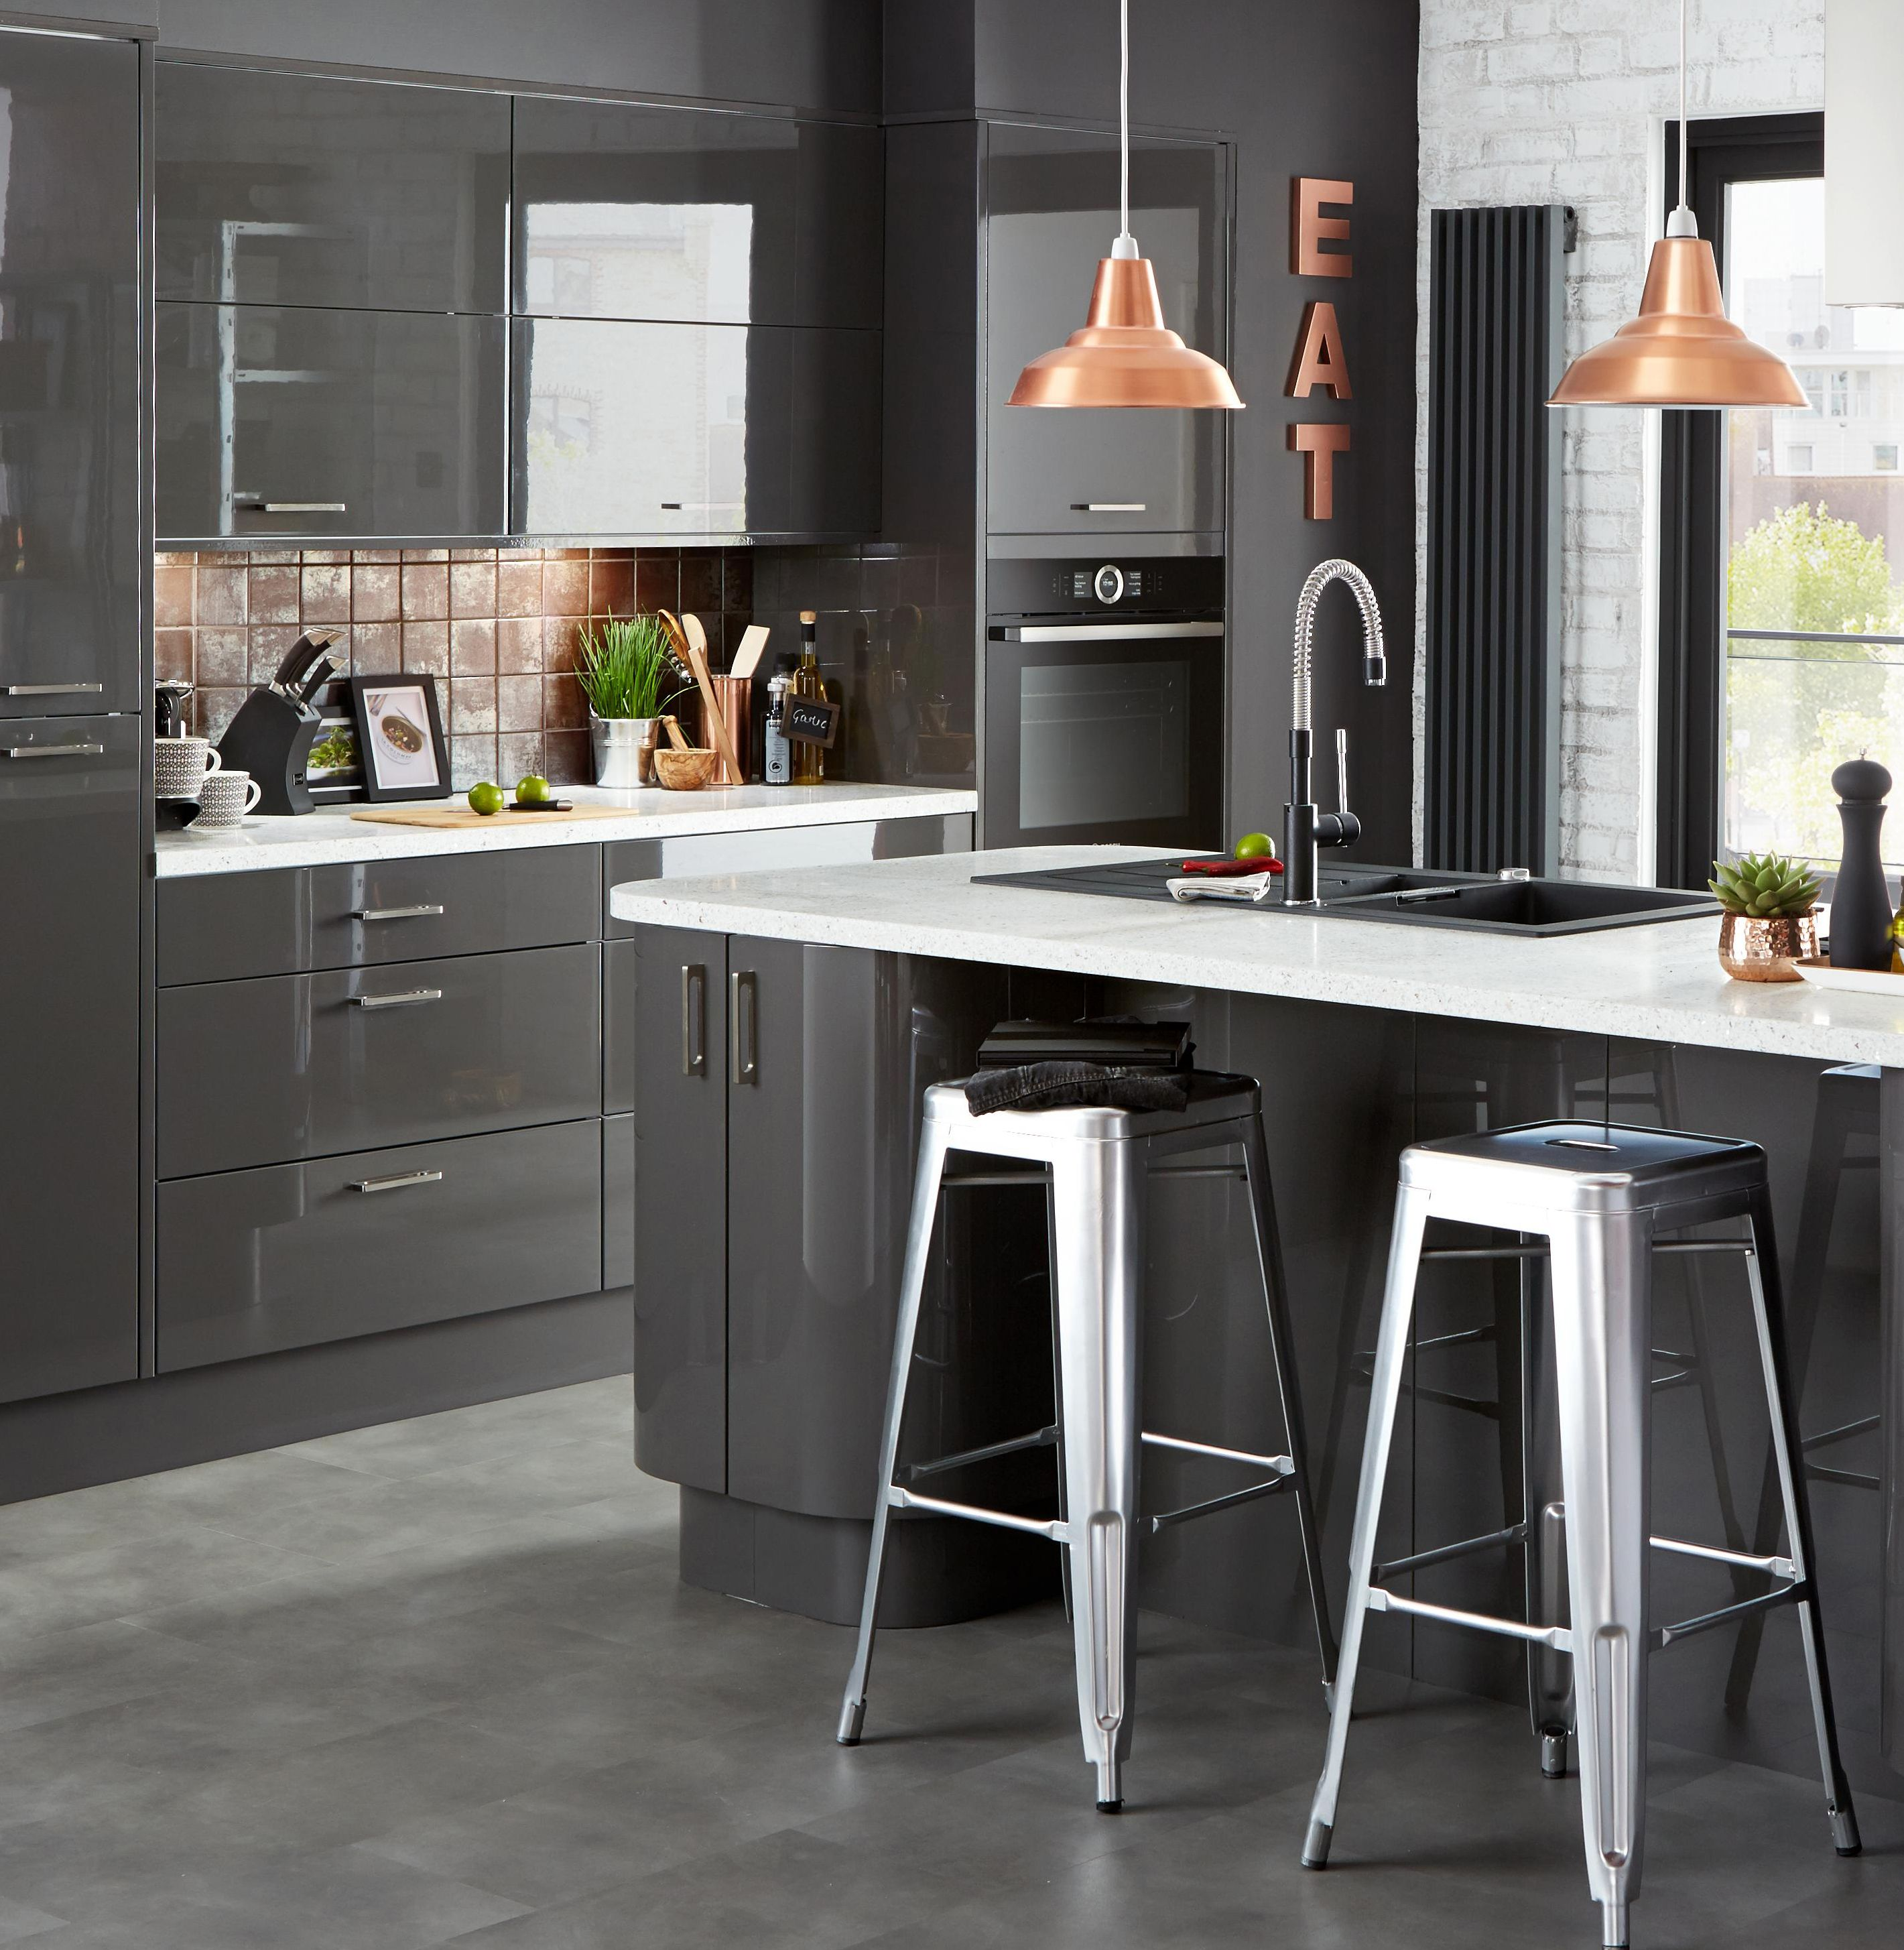 Give ultra modern kitchens an extra lift with metallic